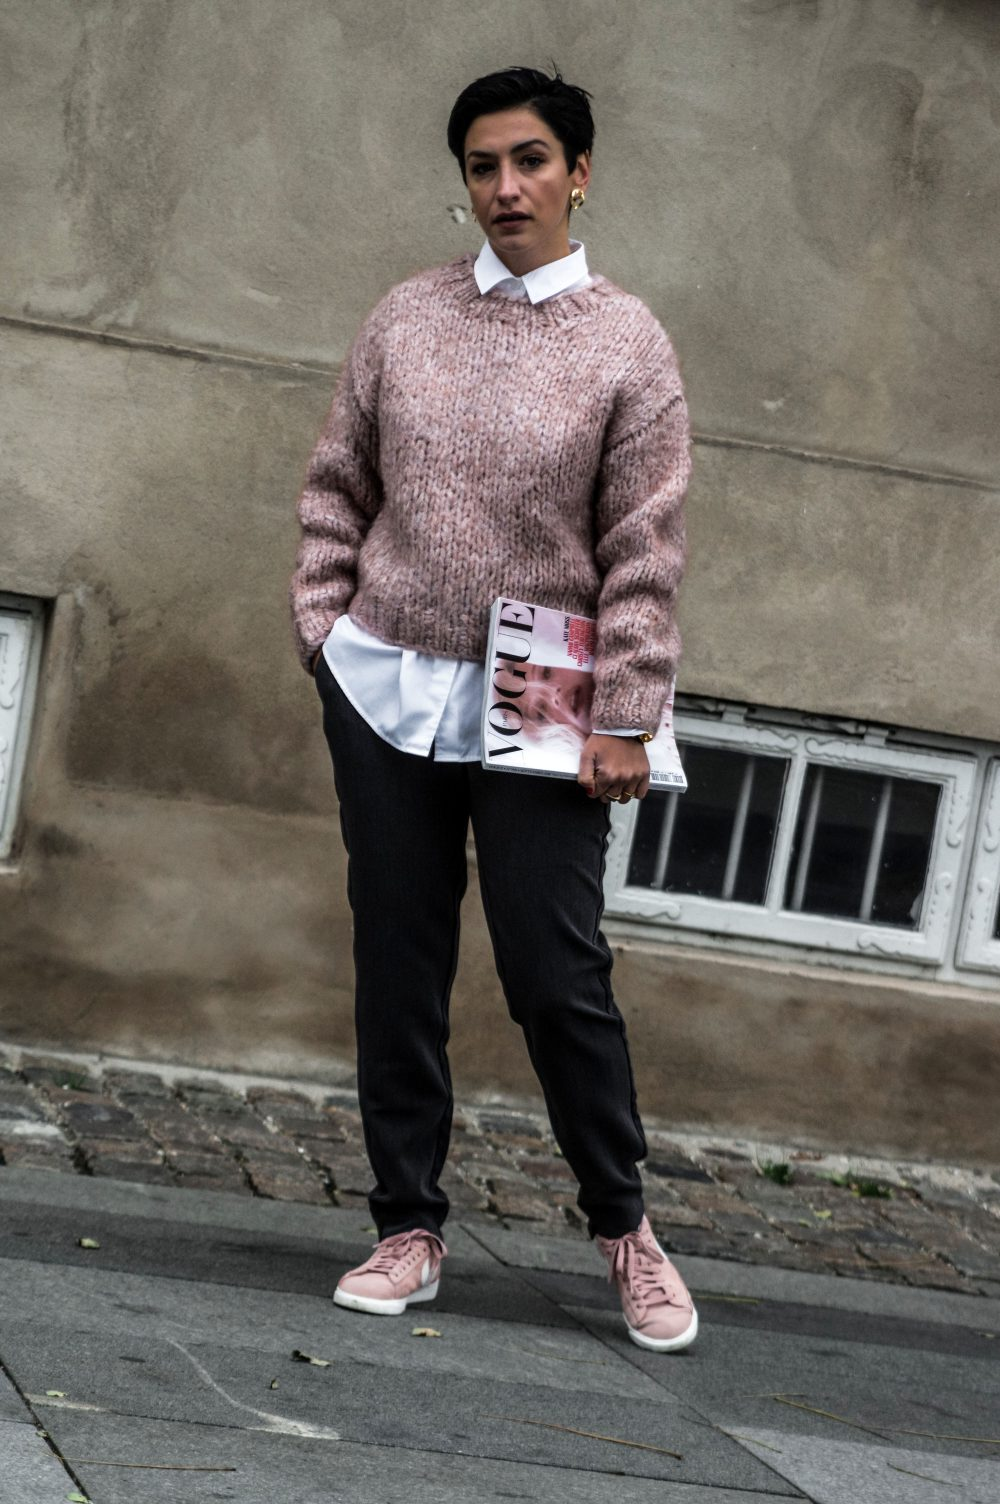 3-Scandinavian-winter-outfits-ideas-instagram-round-up-layered-outfitsweaterwork-wear-casual-style-Copenhagen-streetstyle.